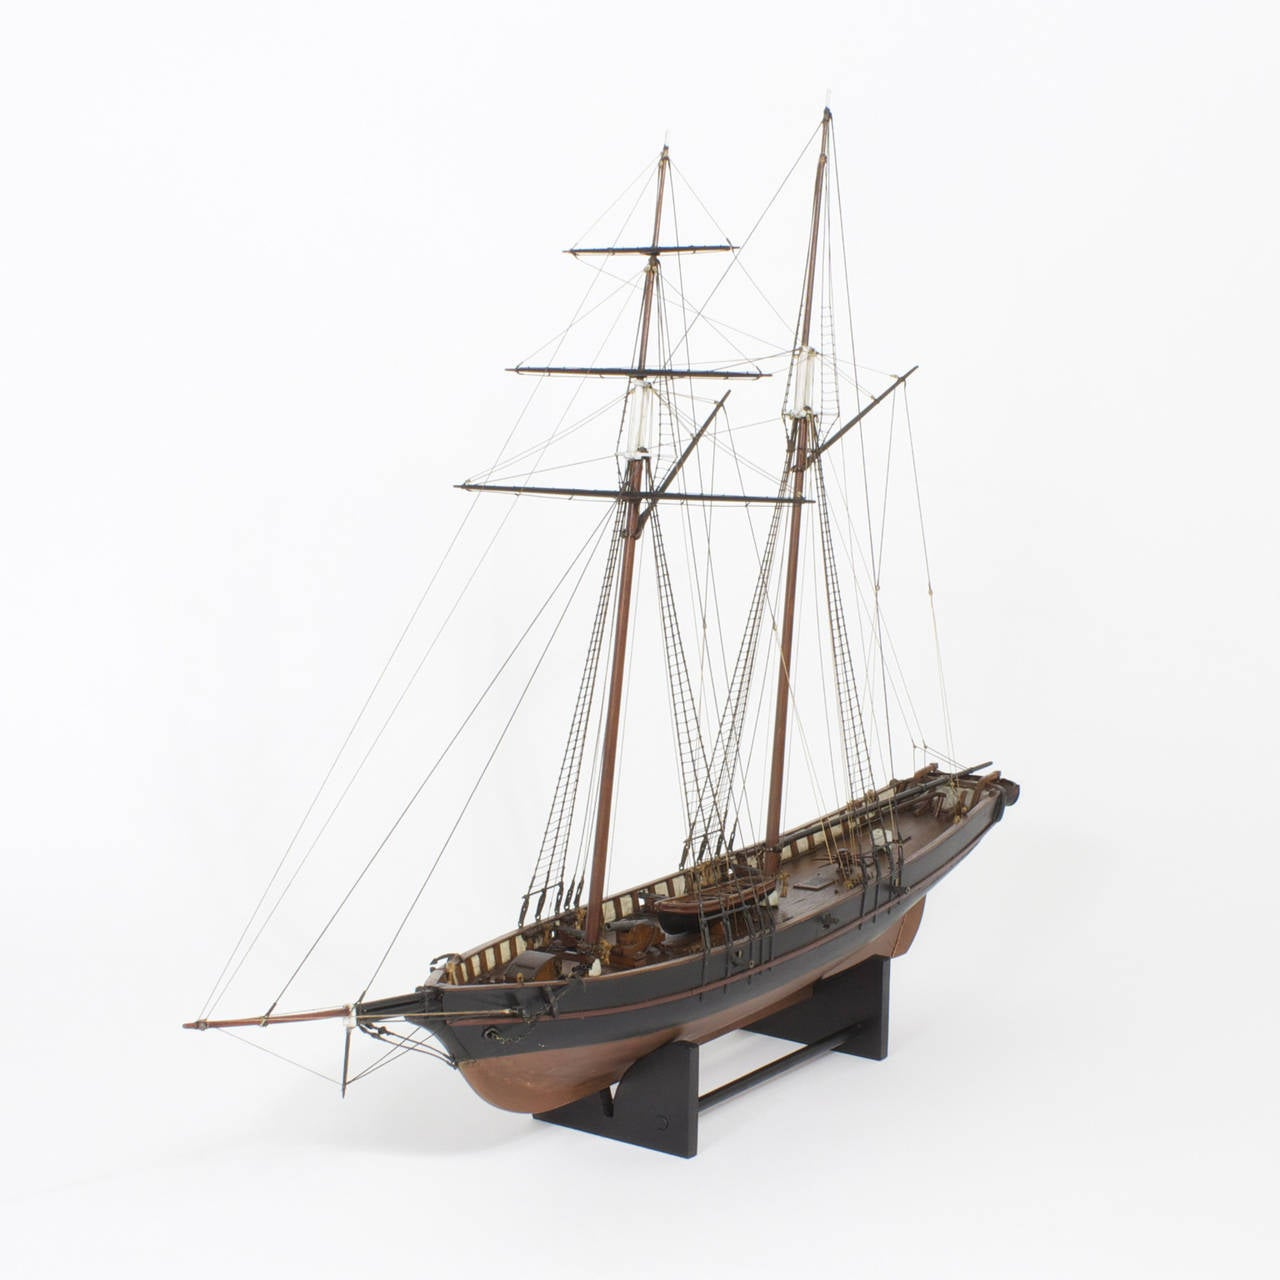 A fine and detailed high quality ship model of a schooner that is rigged for privateering with two masts and a realistic rig. Made of mahogany and trimmed with black and white paint. This model depicts fast moving vessel carrying life boats and 7